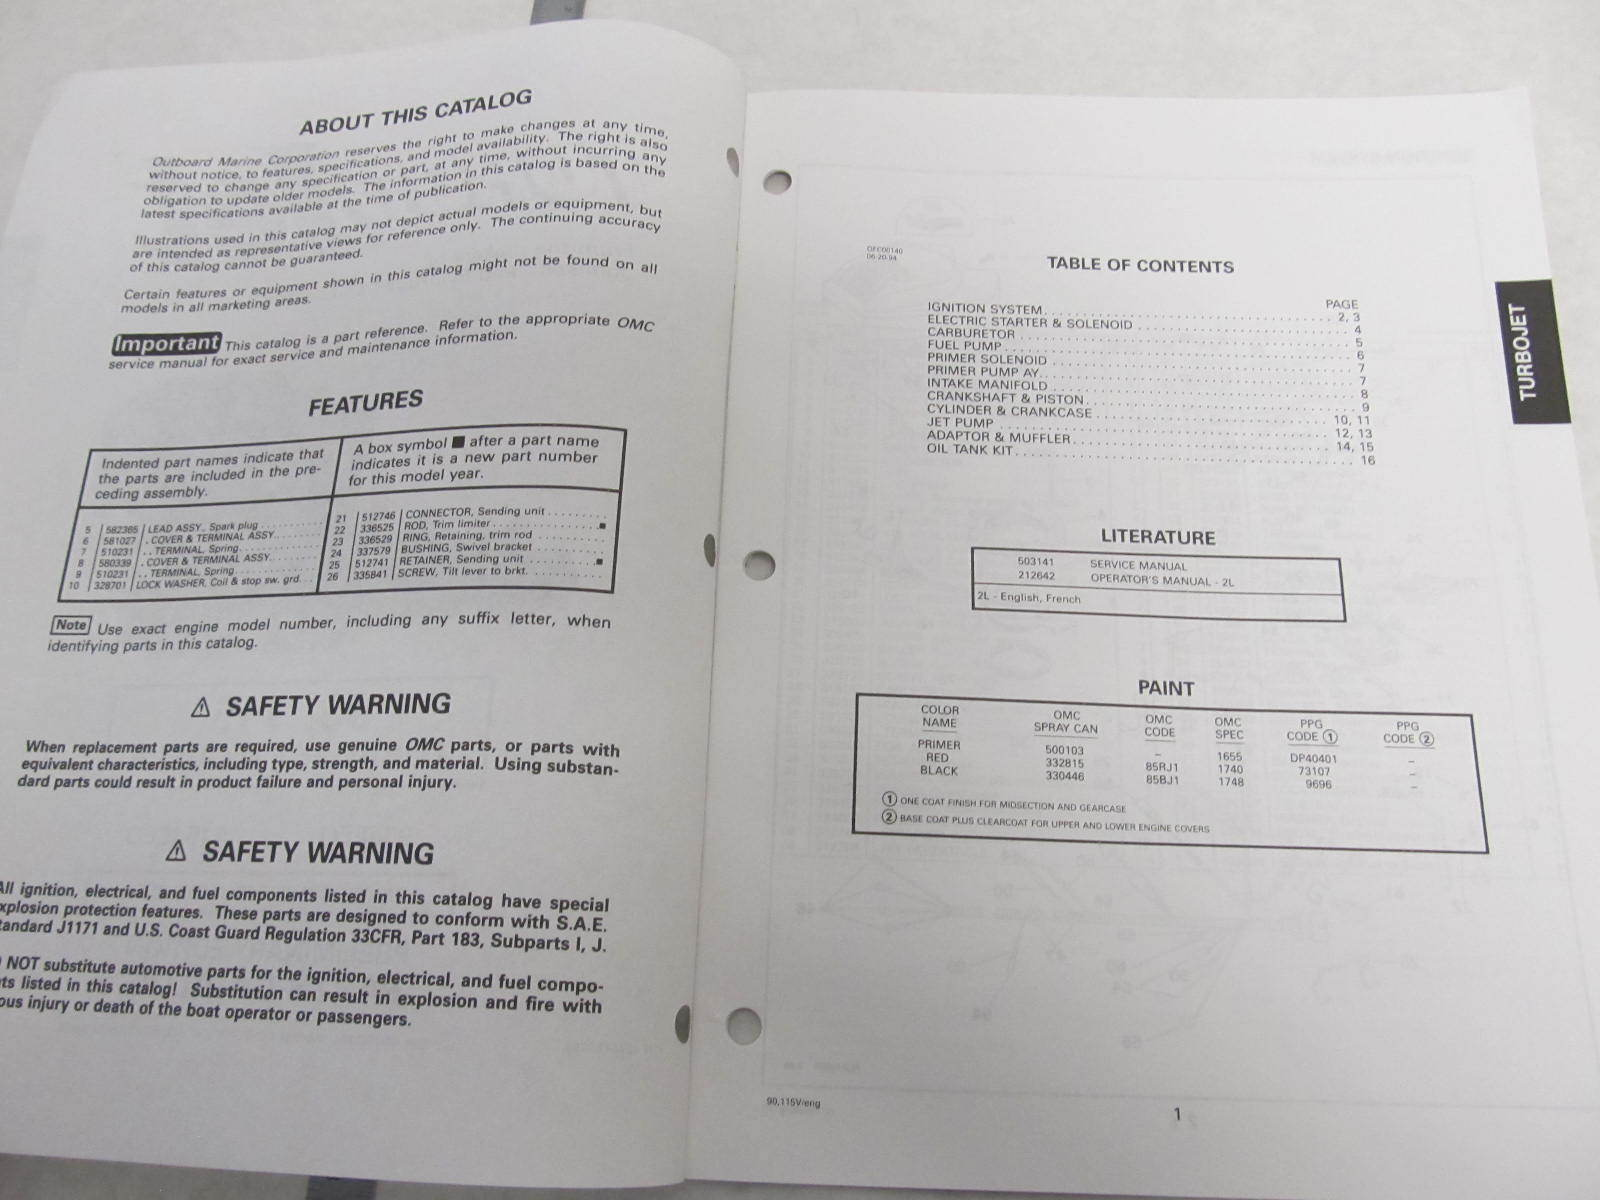 preliminary edition, oem er johnson-evinrude parts catalog, hi boaters   comments closed  omc 115 turbojet service manual  1994 johnson evinrude er  cv 85